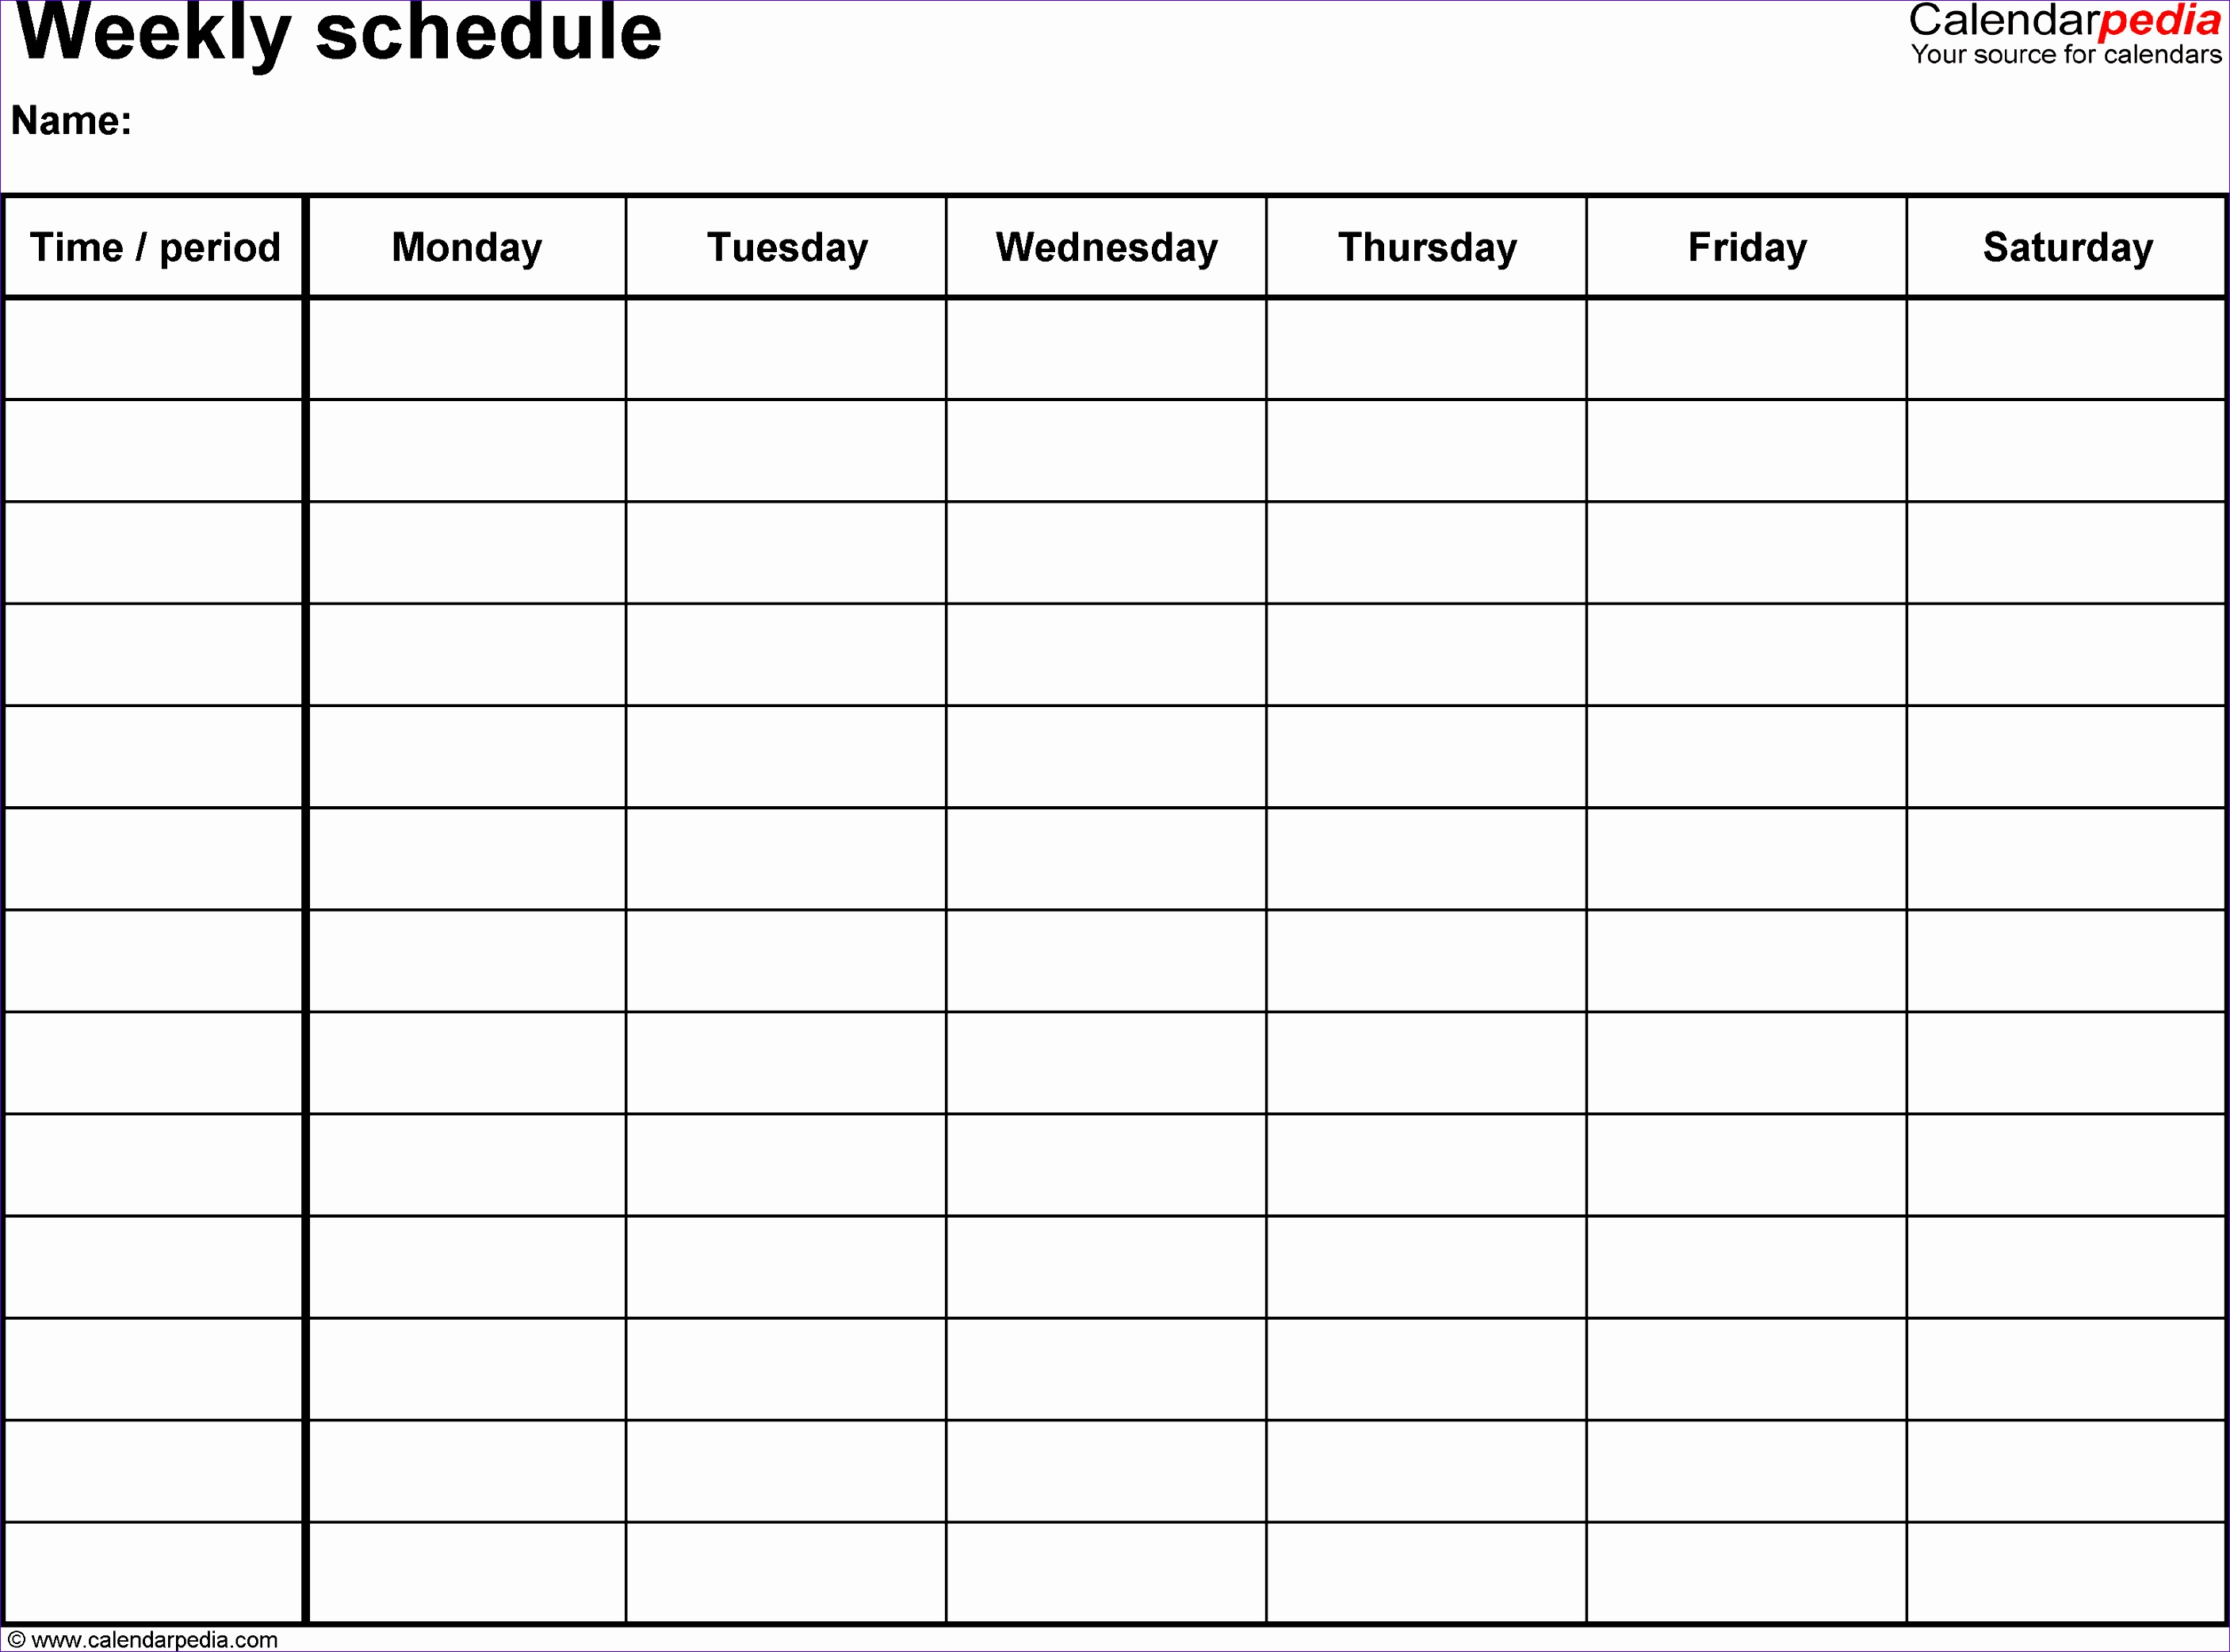 Work Roster Template Excel Udzog Inspirational Free Weekly Schedule Templates for Excel 18 Templates